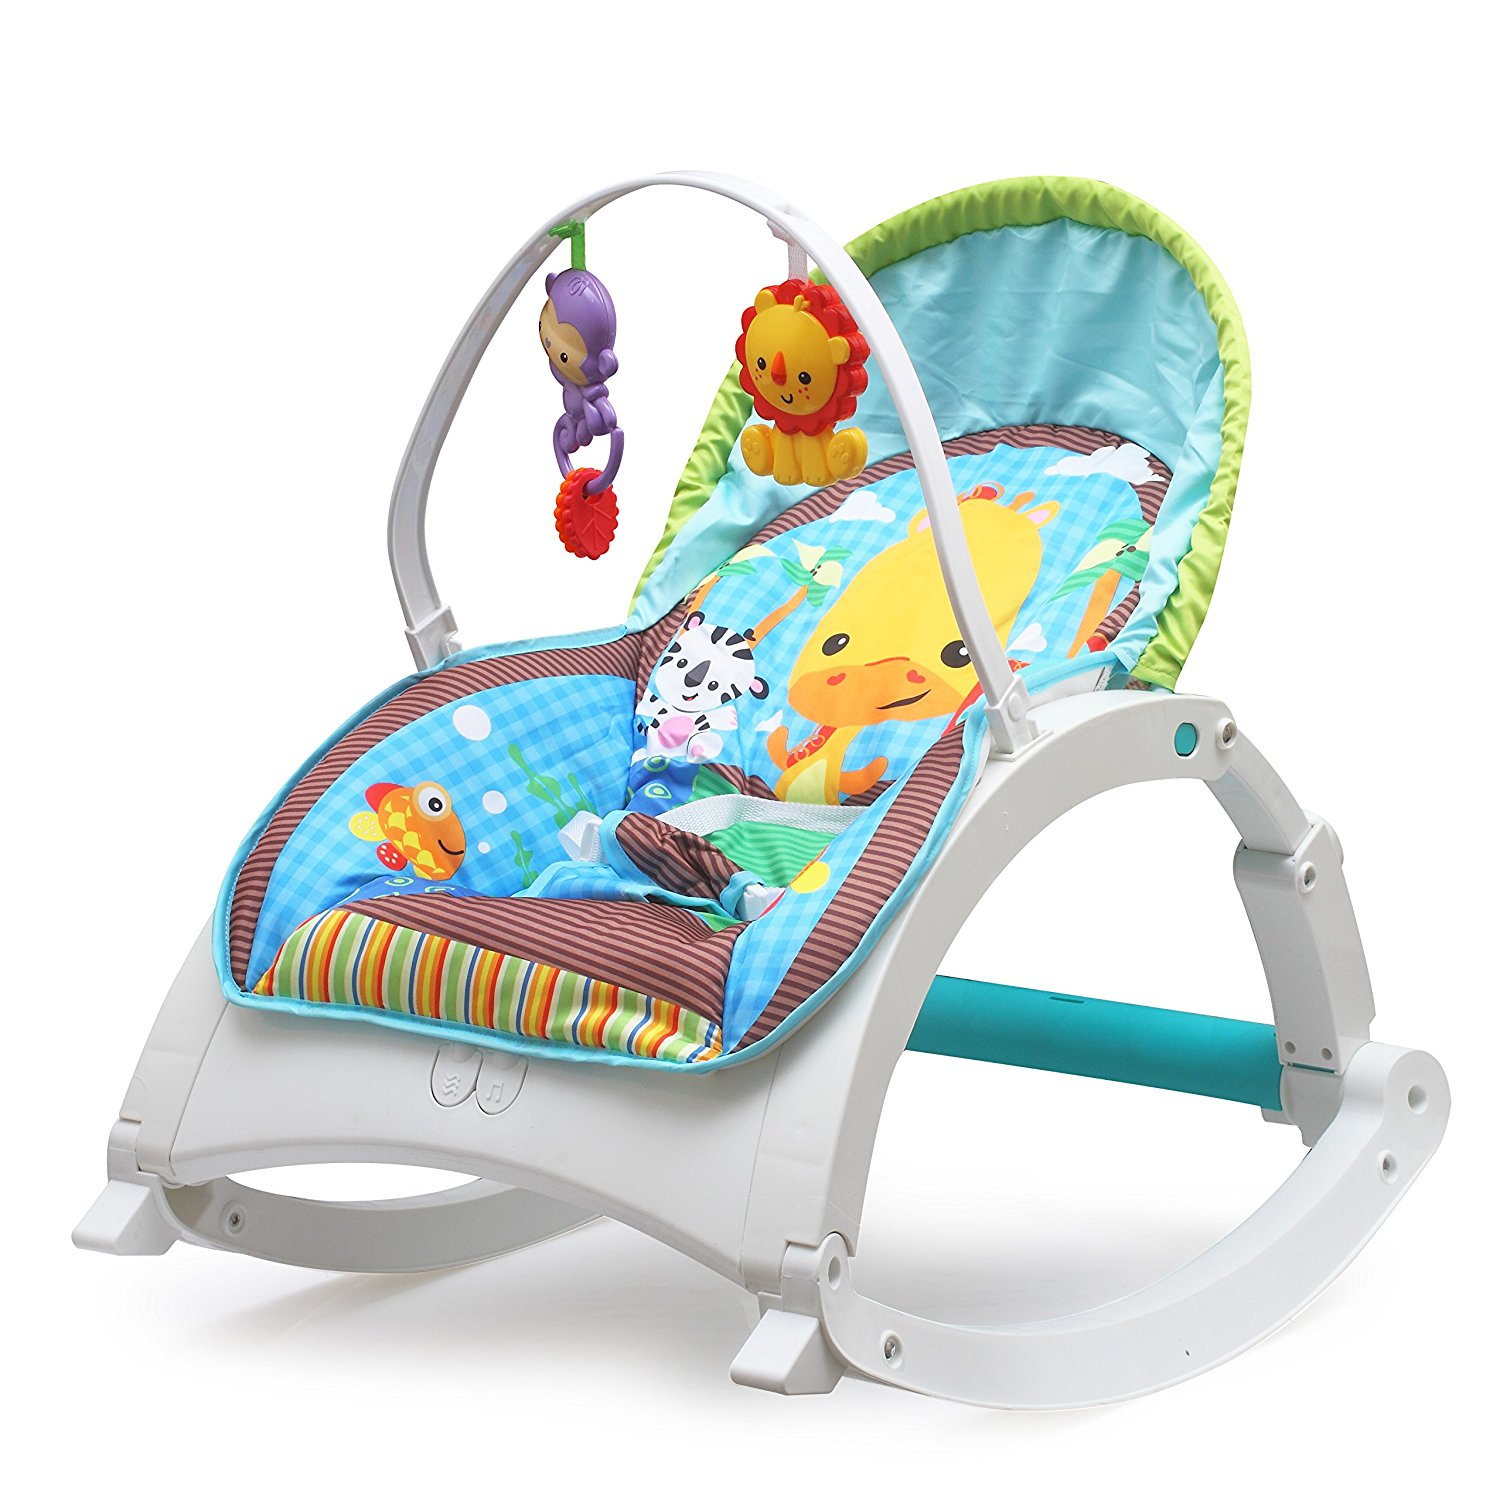 Fiddle-Diddle-Baby-Bouncer-Cum-Rocker The 10 Best Baby Rocking Chairs in India Reviews & Price List 2018